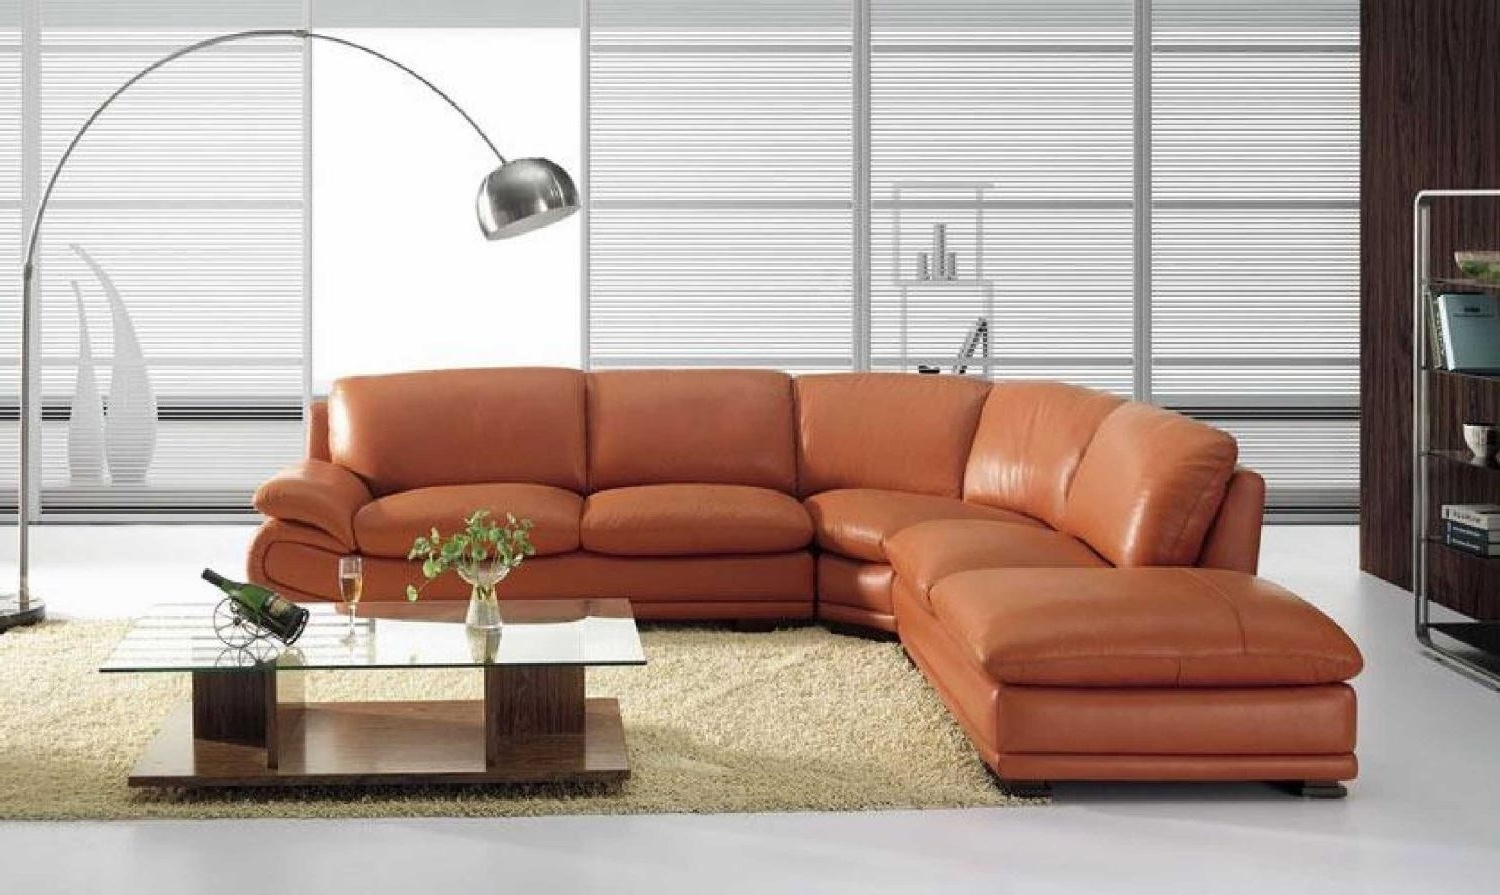 Recent Vig Furniture Bo 3920 Leather Modern Camel Sectional Sofa Intended For Camel Sectional Sofas (View 13 of 20)